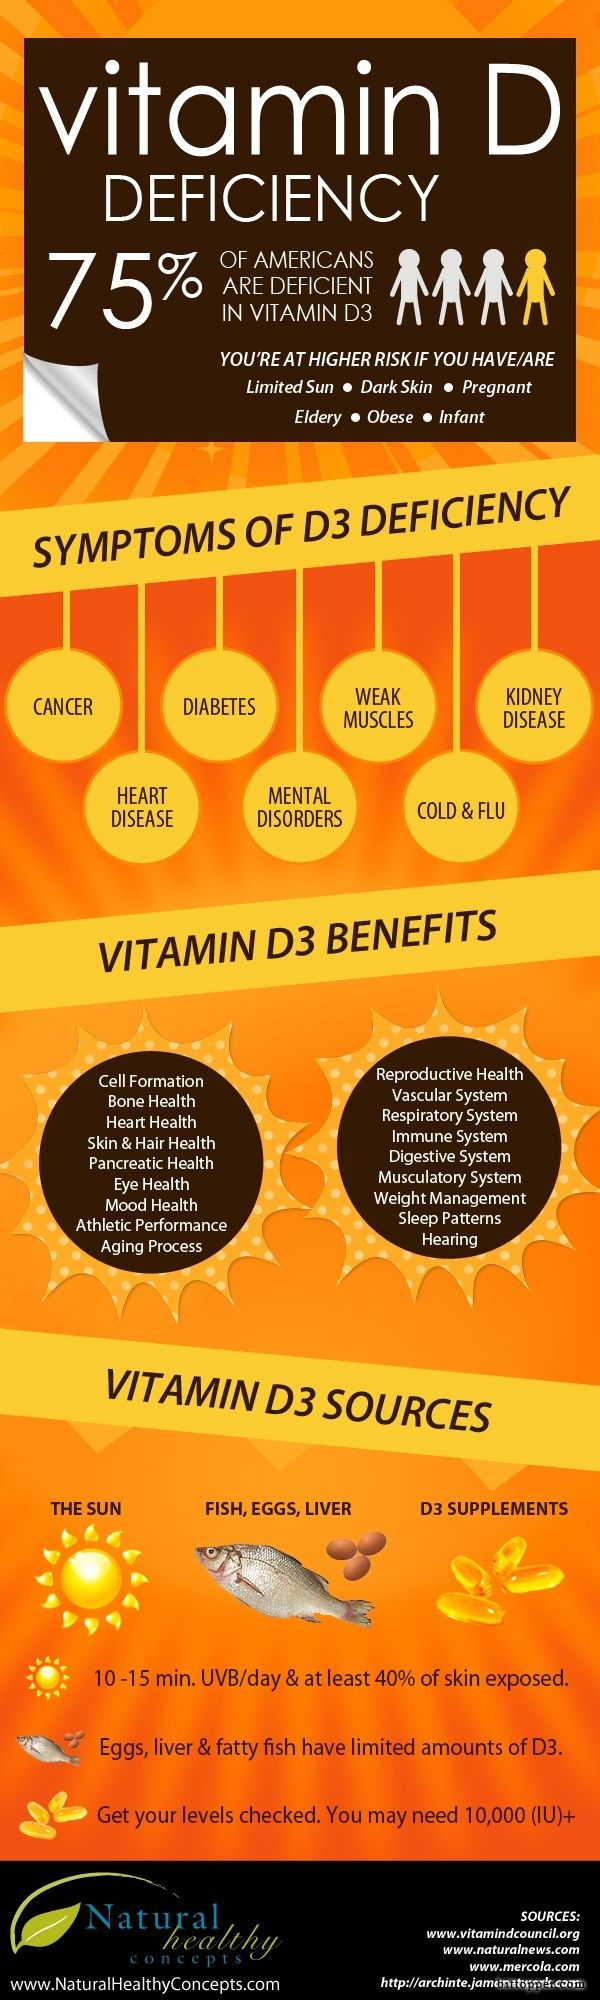 Vitamin-D-Deficiency Infographic via www.bittopper.com/post.php?id=1539281922528782e76bd180.85057936